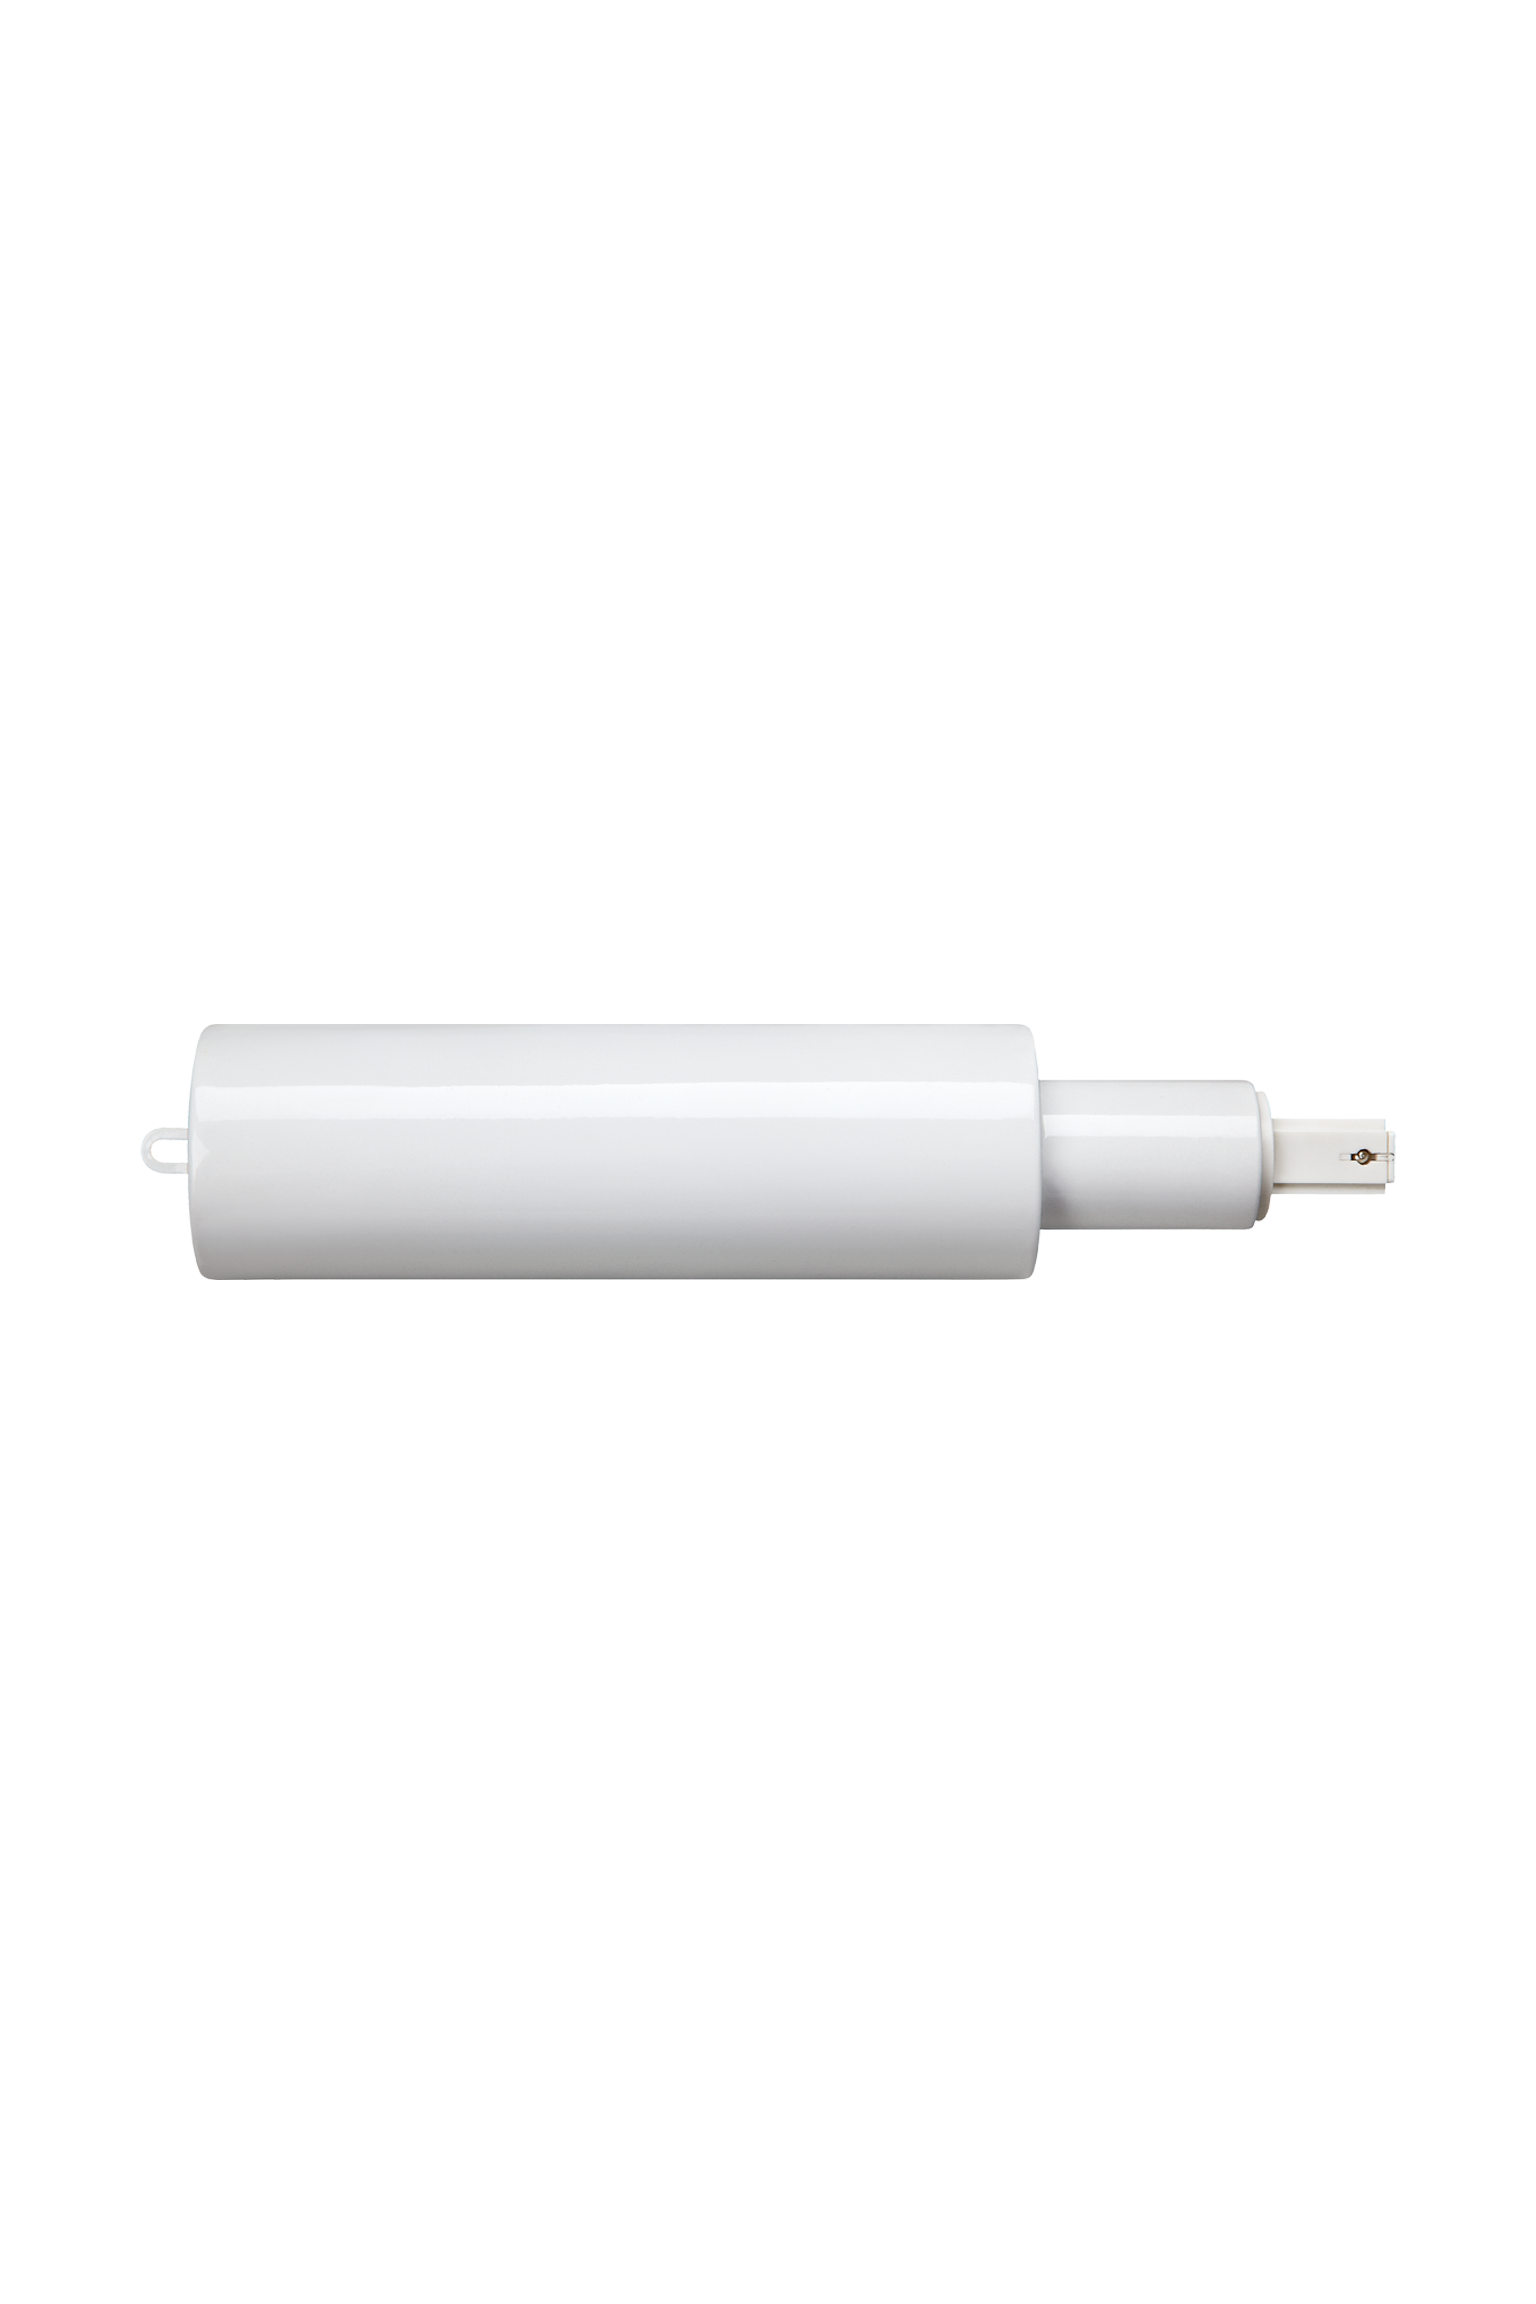 TRACK - Dimmable Driver Small